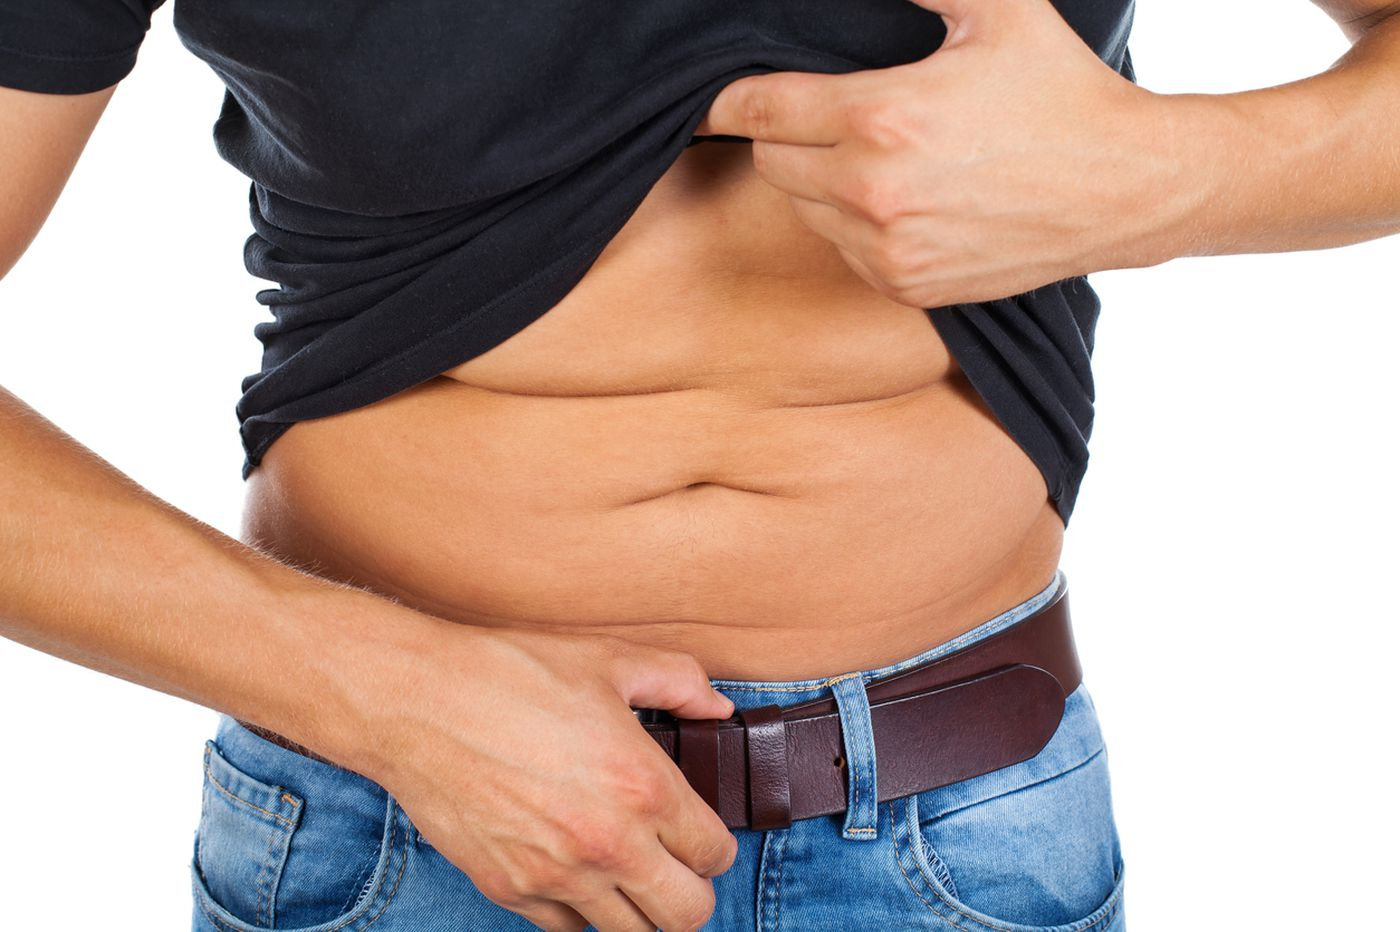 Medical Mystery: Why was yellow discharge draining from man's belly button?